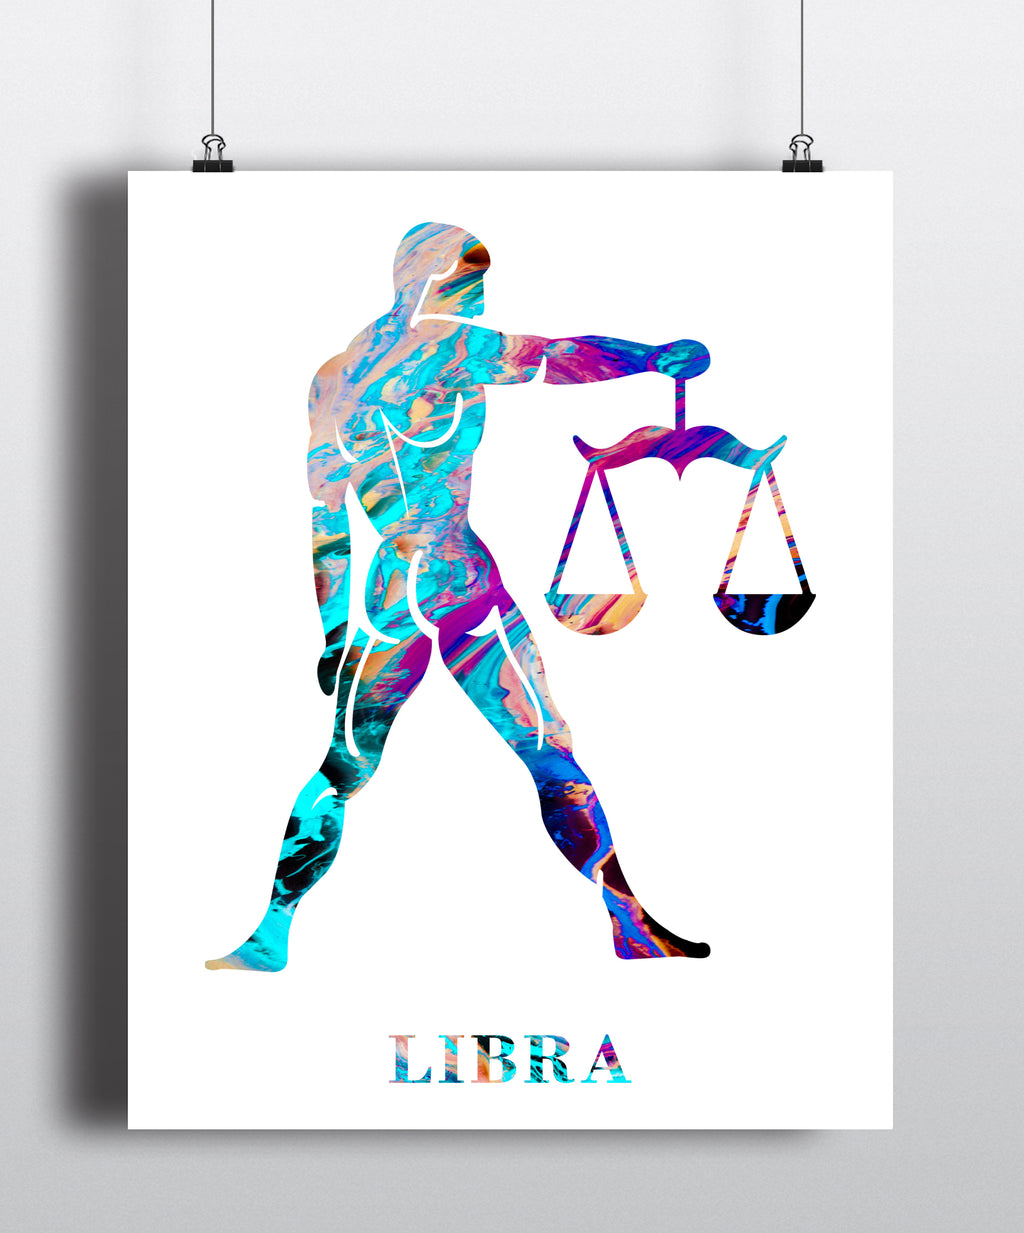 Libra Astrology Art Print - Unframed - Zuzi's